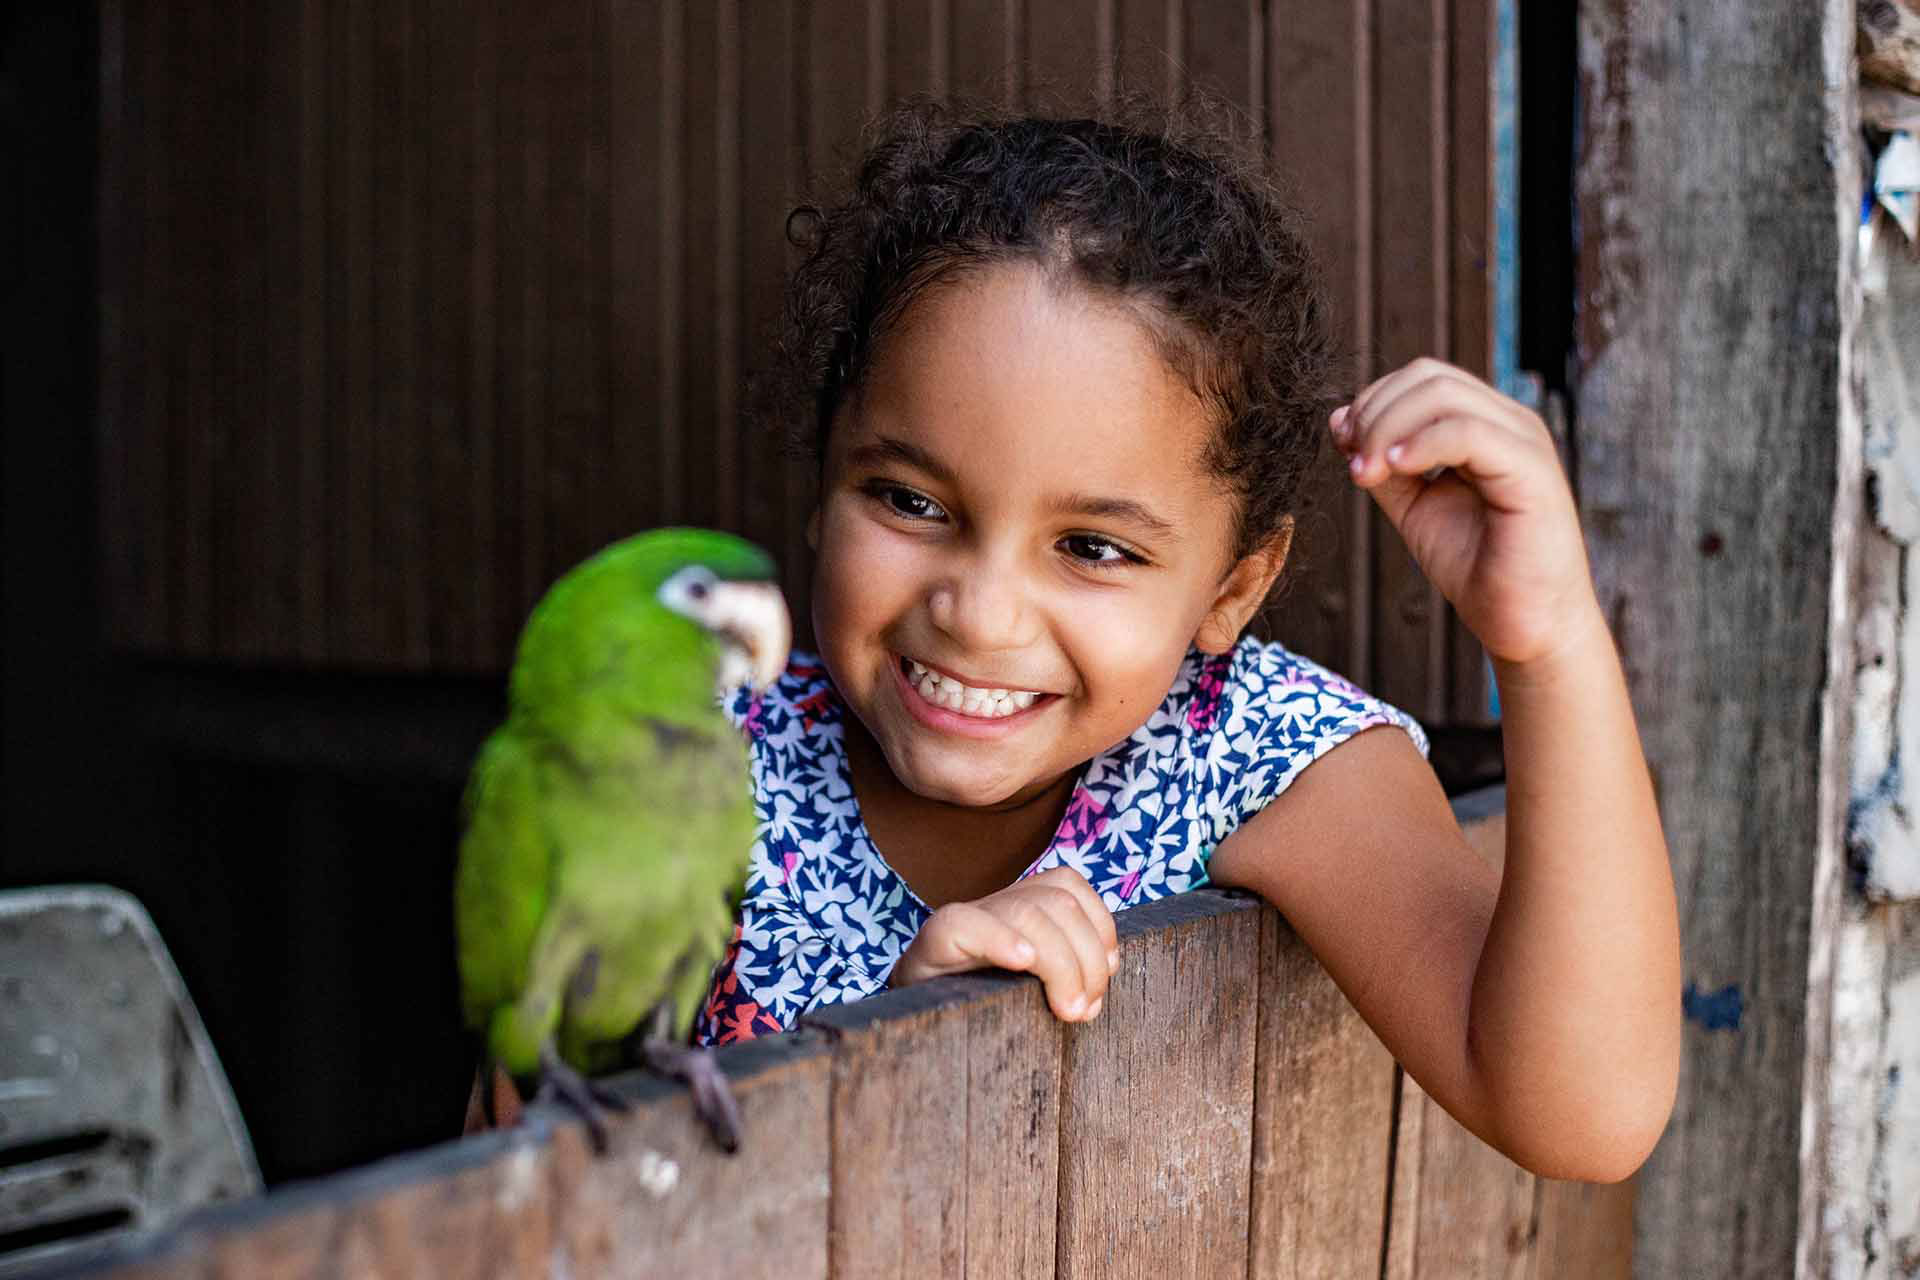 Maisa, a joyful 4-year-old in Brazil watches a bird